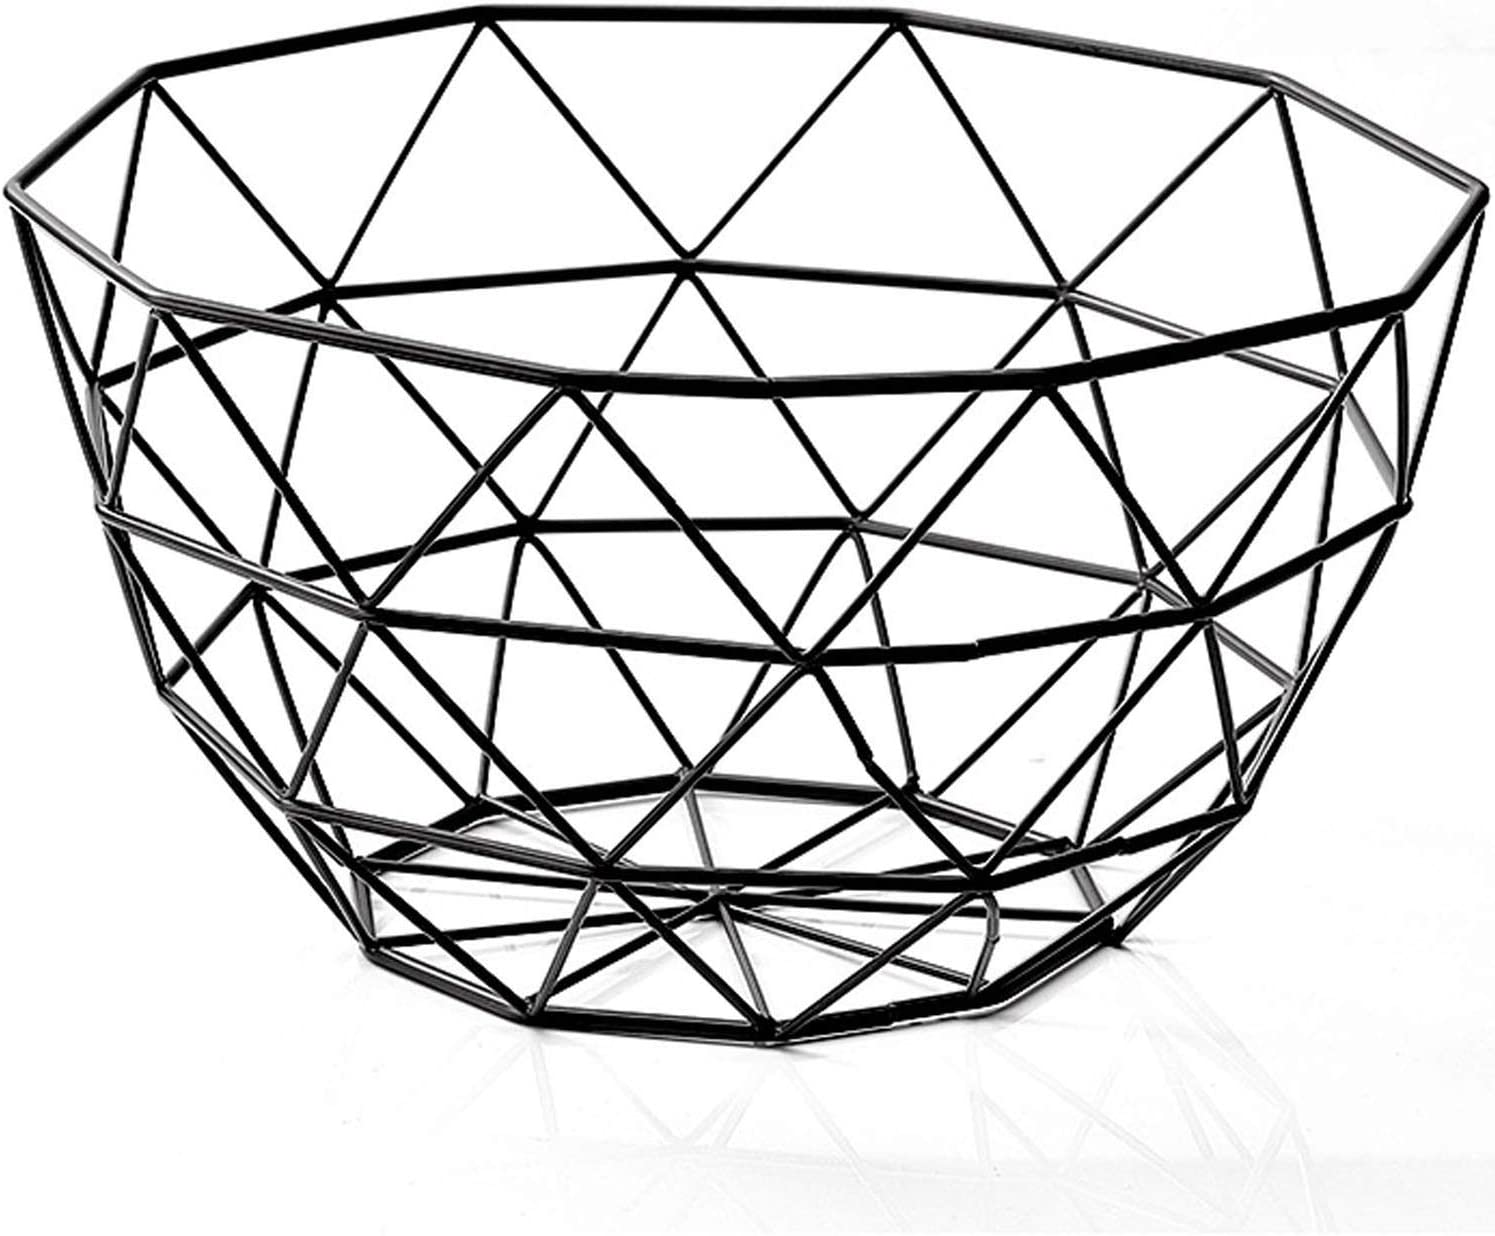 Wire Fruit Basket, Creative Mesh Fruit Dish Basket Bowl, Round Black Large Metal Storage Baskets, Modern Style Container Centerpiece for Vegetables, Bread, Snacks, Potpourris (Black, Large)